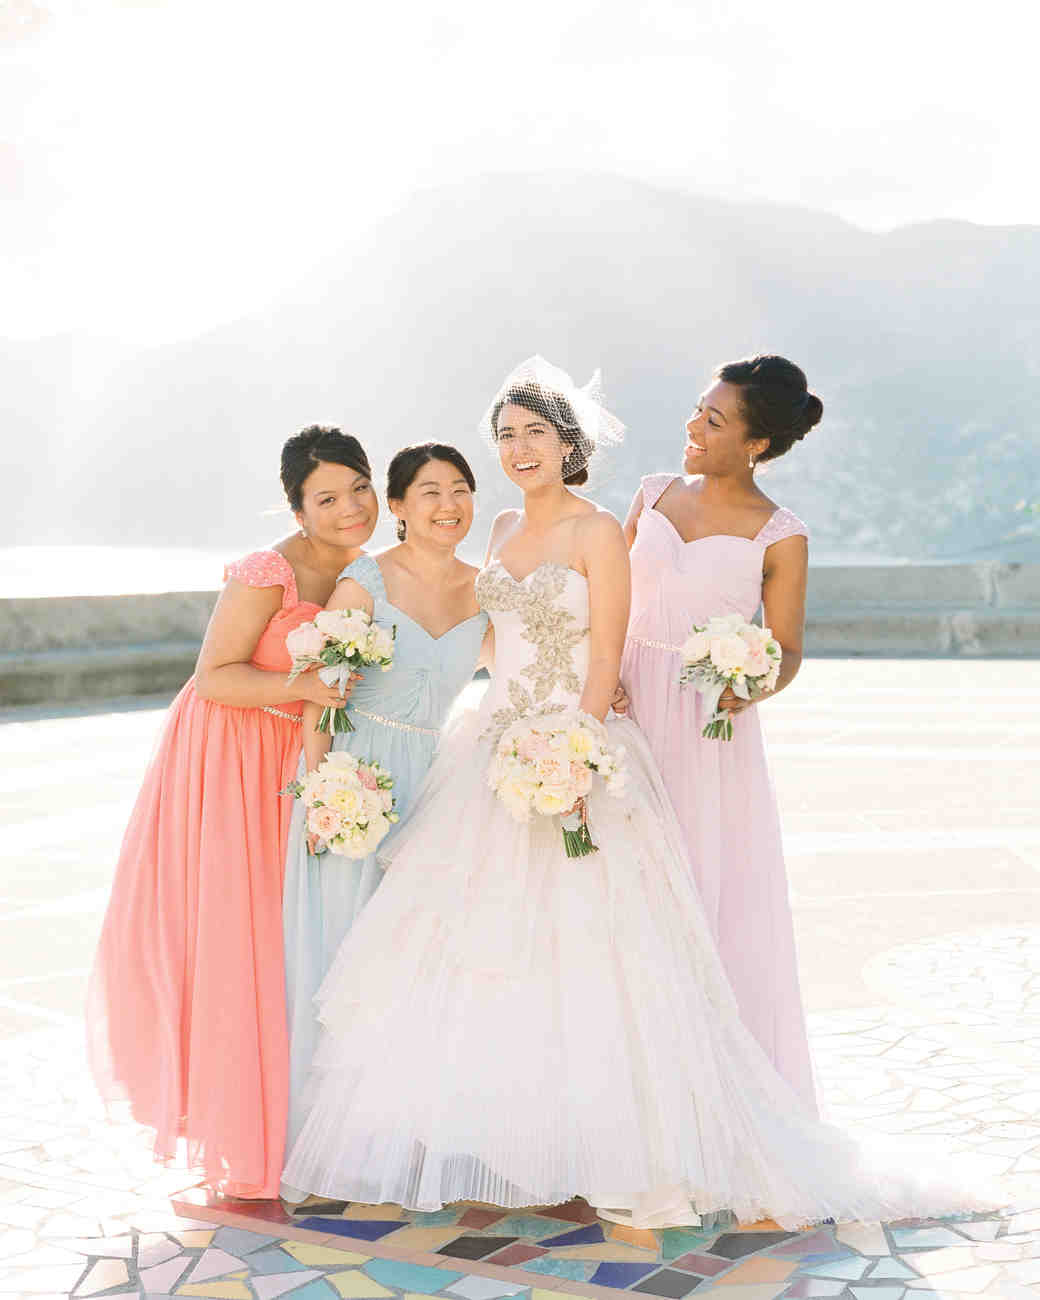 michelle-christopher-positano-bride-bridesmaids-0700-s111681.jpg